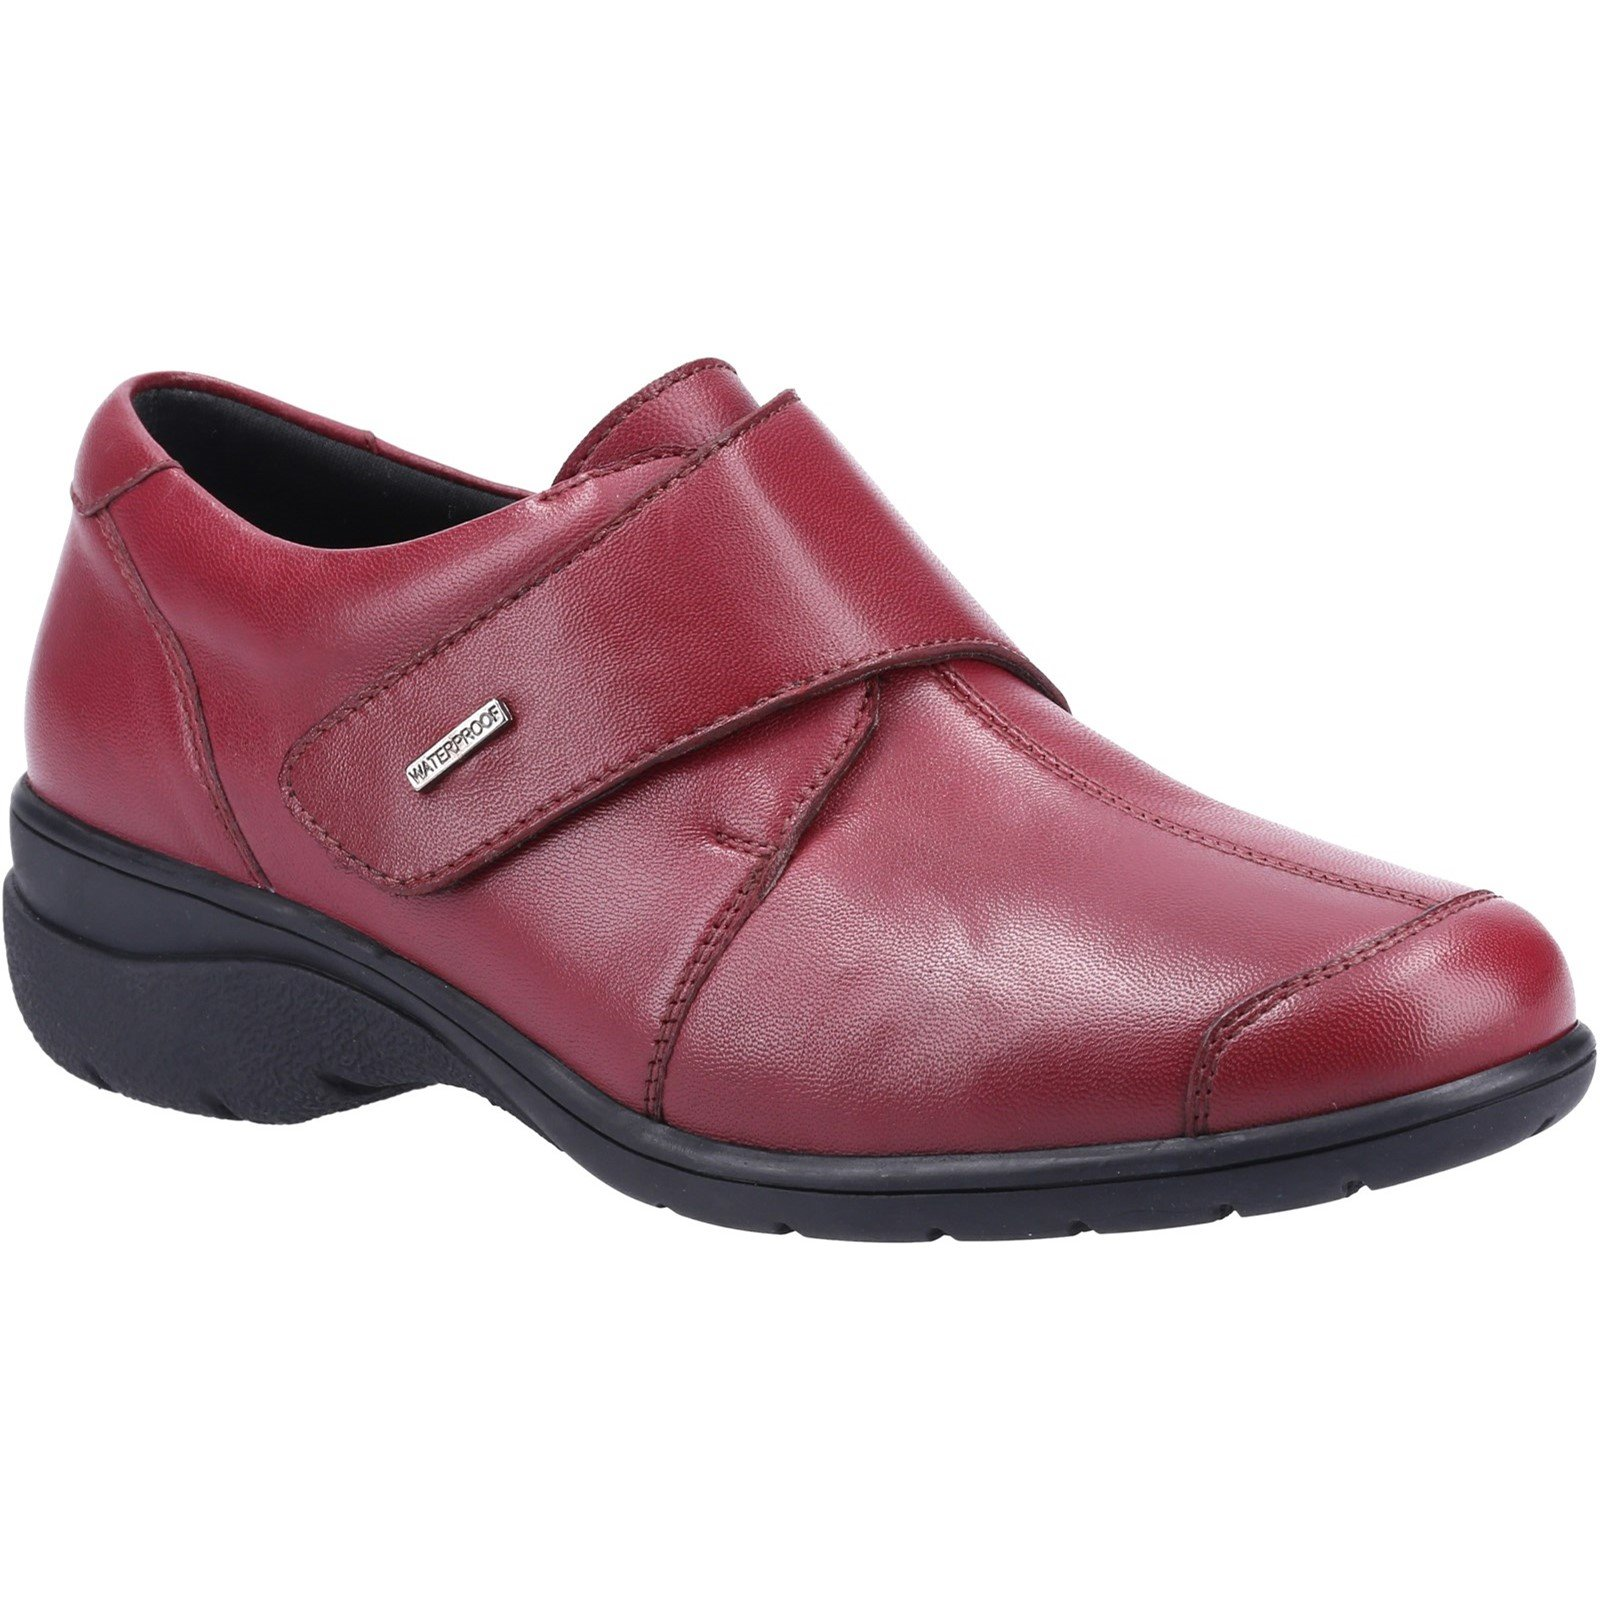 Cotswold Women's Cranham Touch Fastening Trainer Various Colours 32980 - Red 6